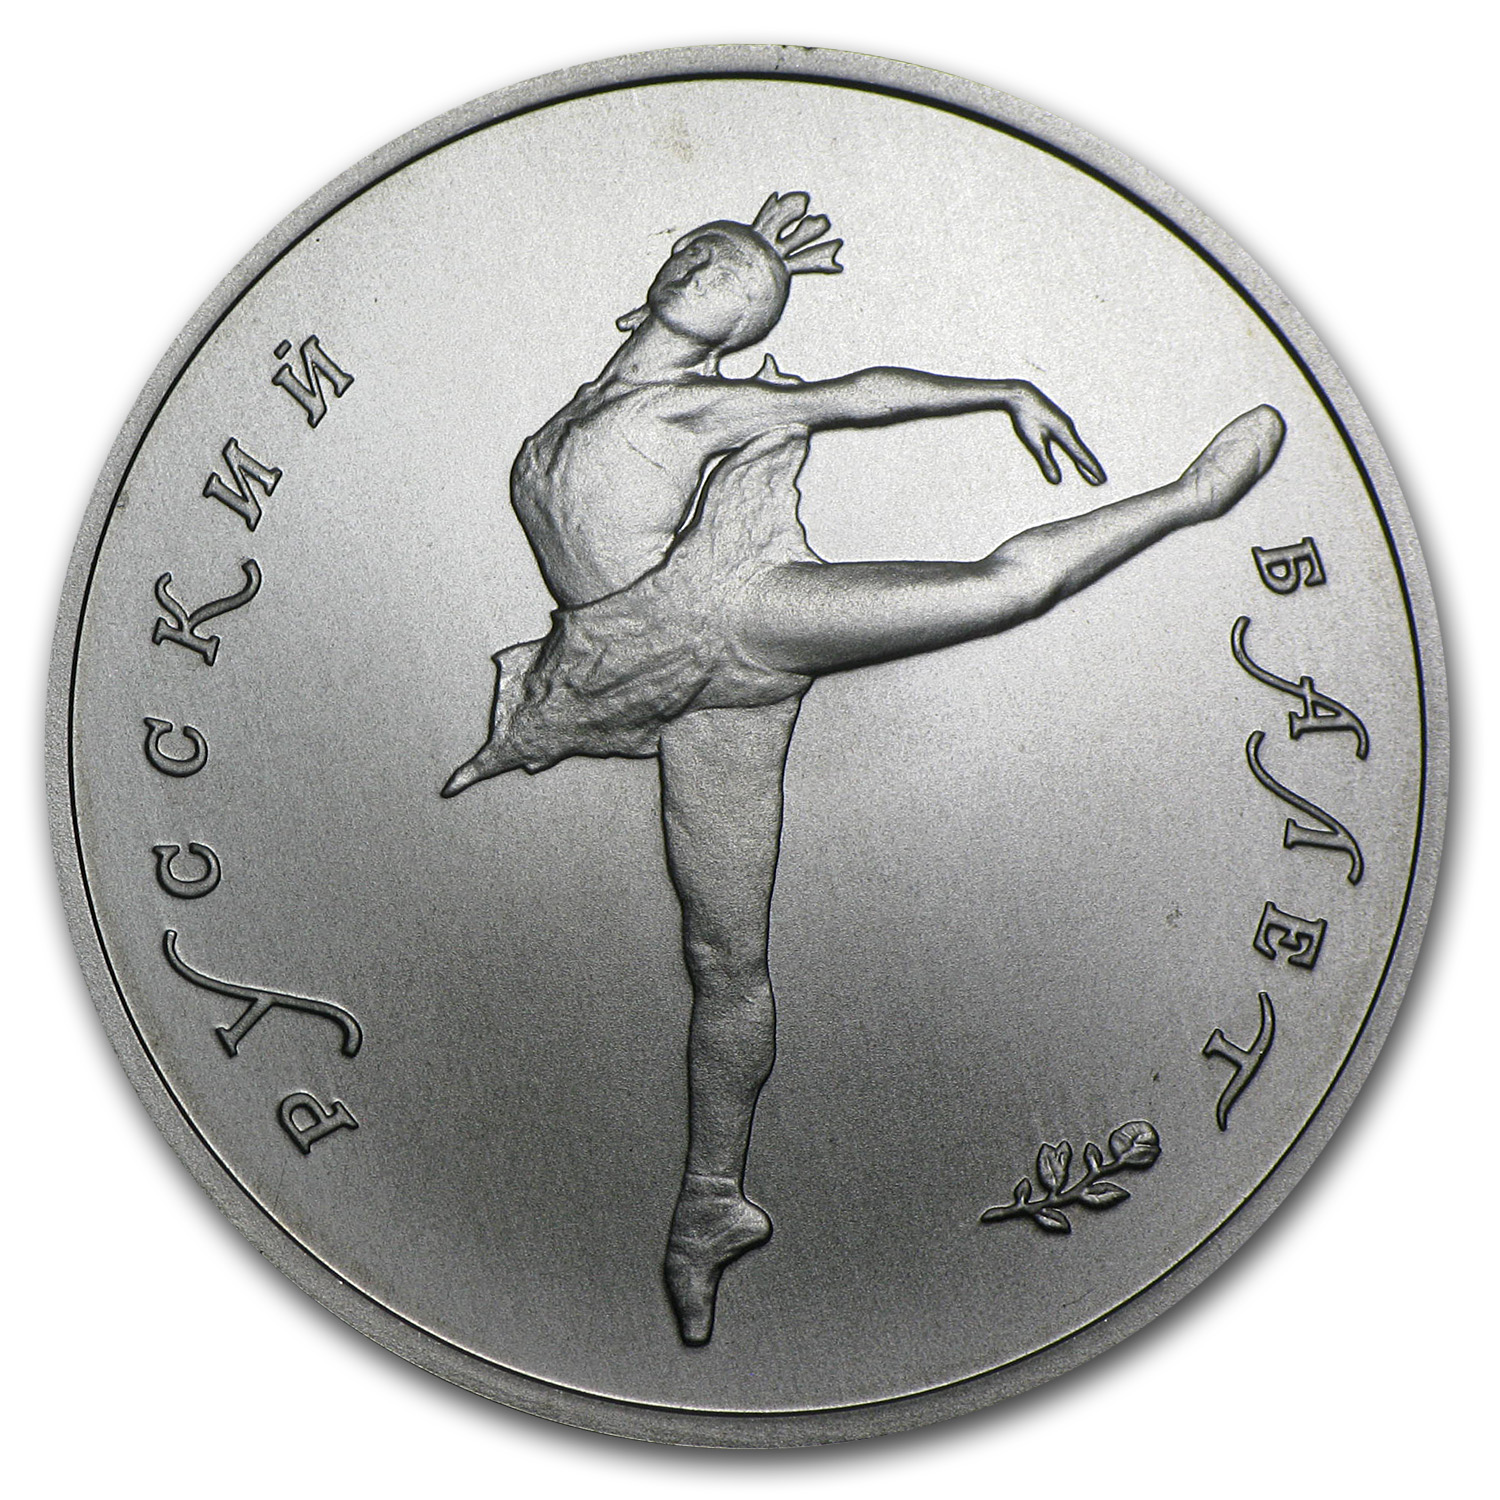 1991 1/2 oz Palladium Russian Ballerina